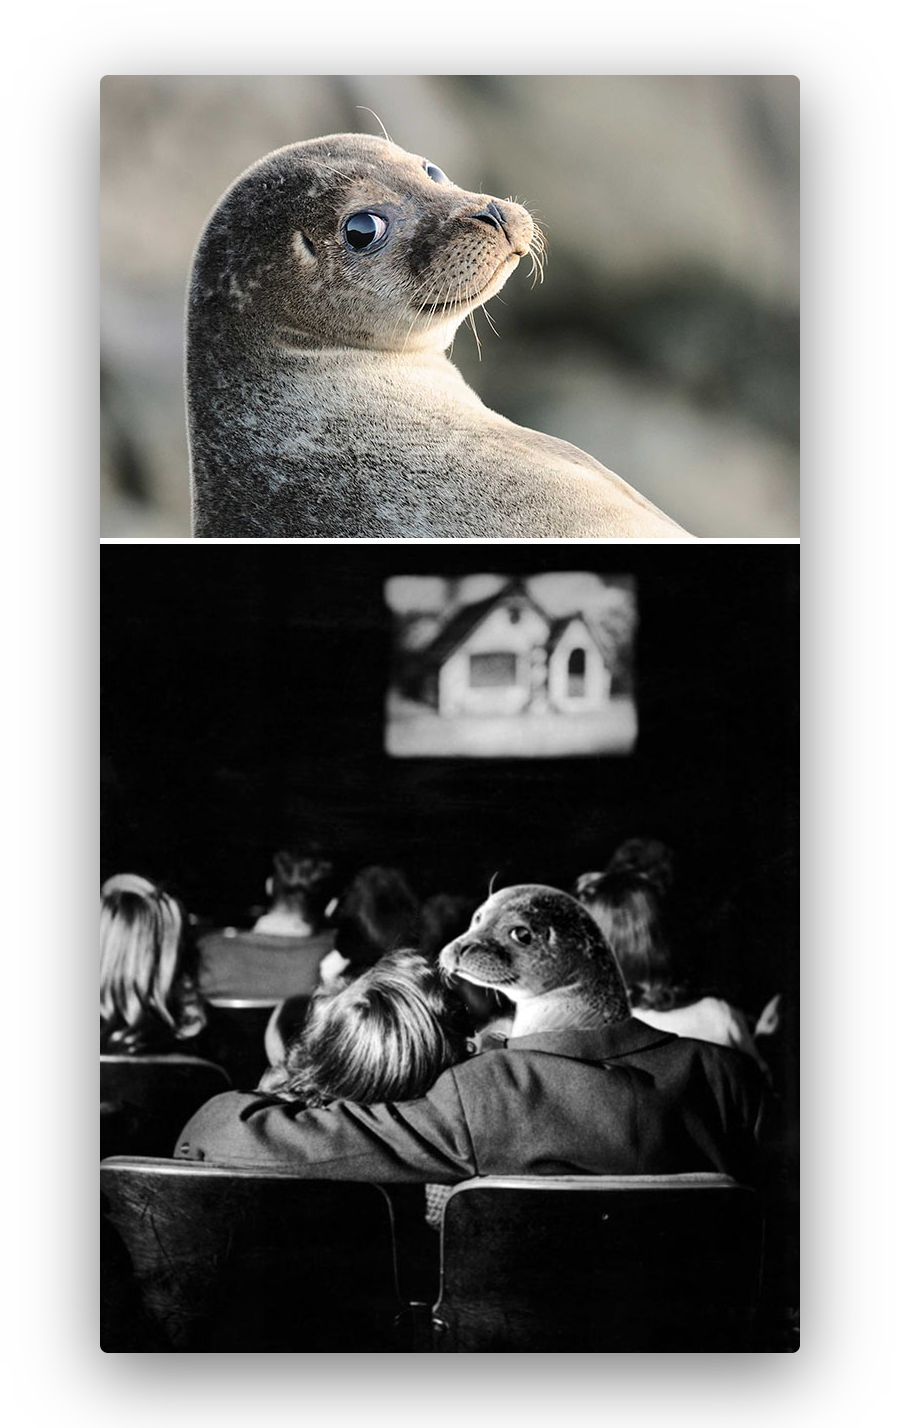 image of a seal flawlessly imposed into a movie theatre setting